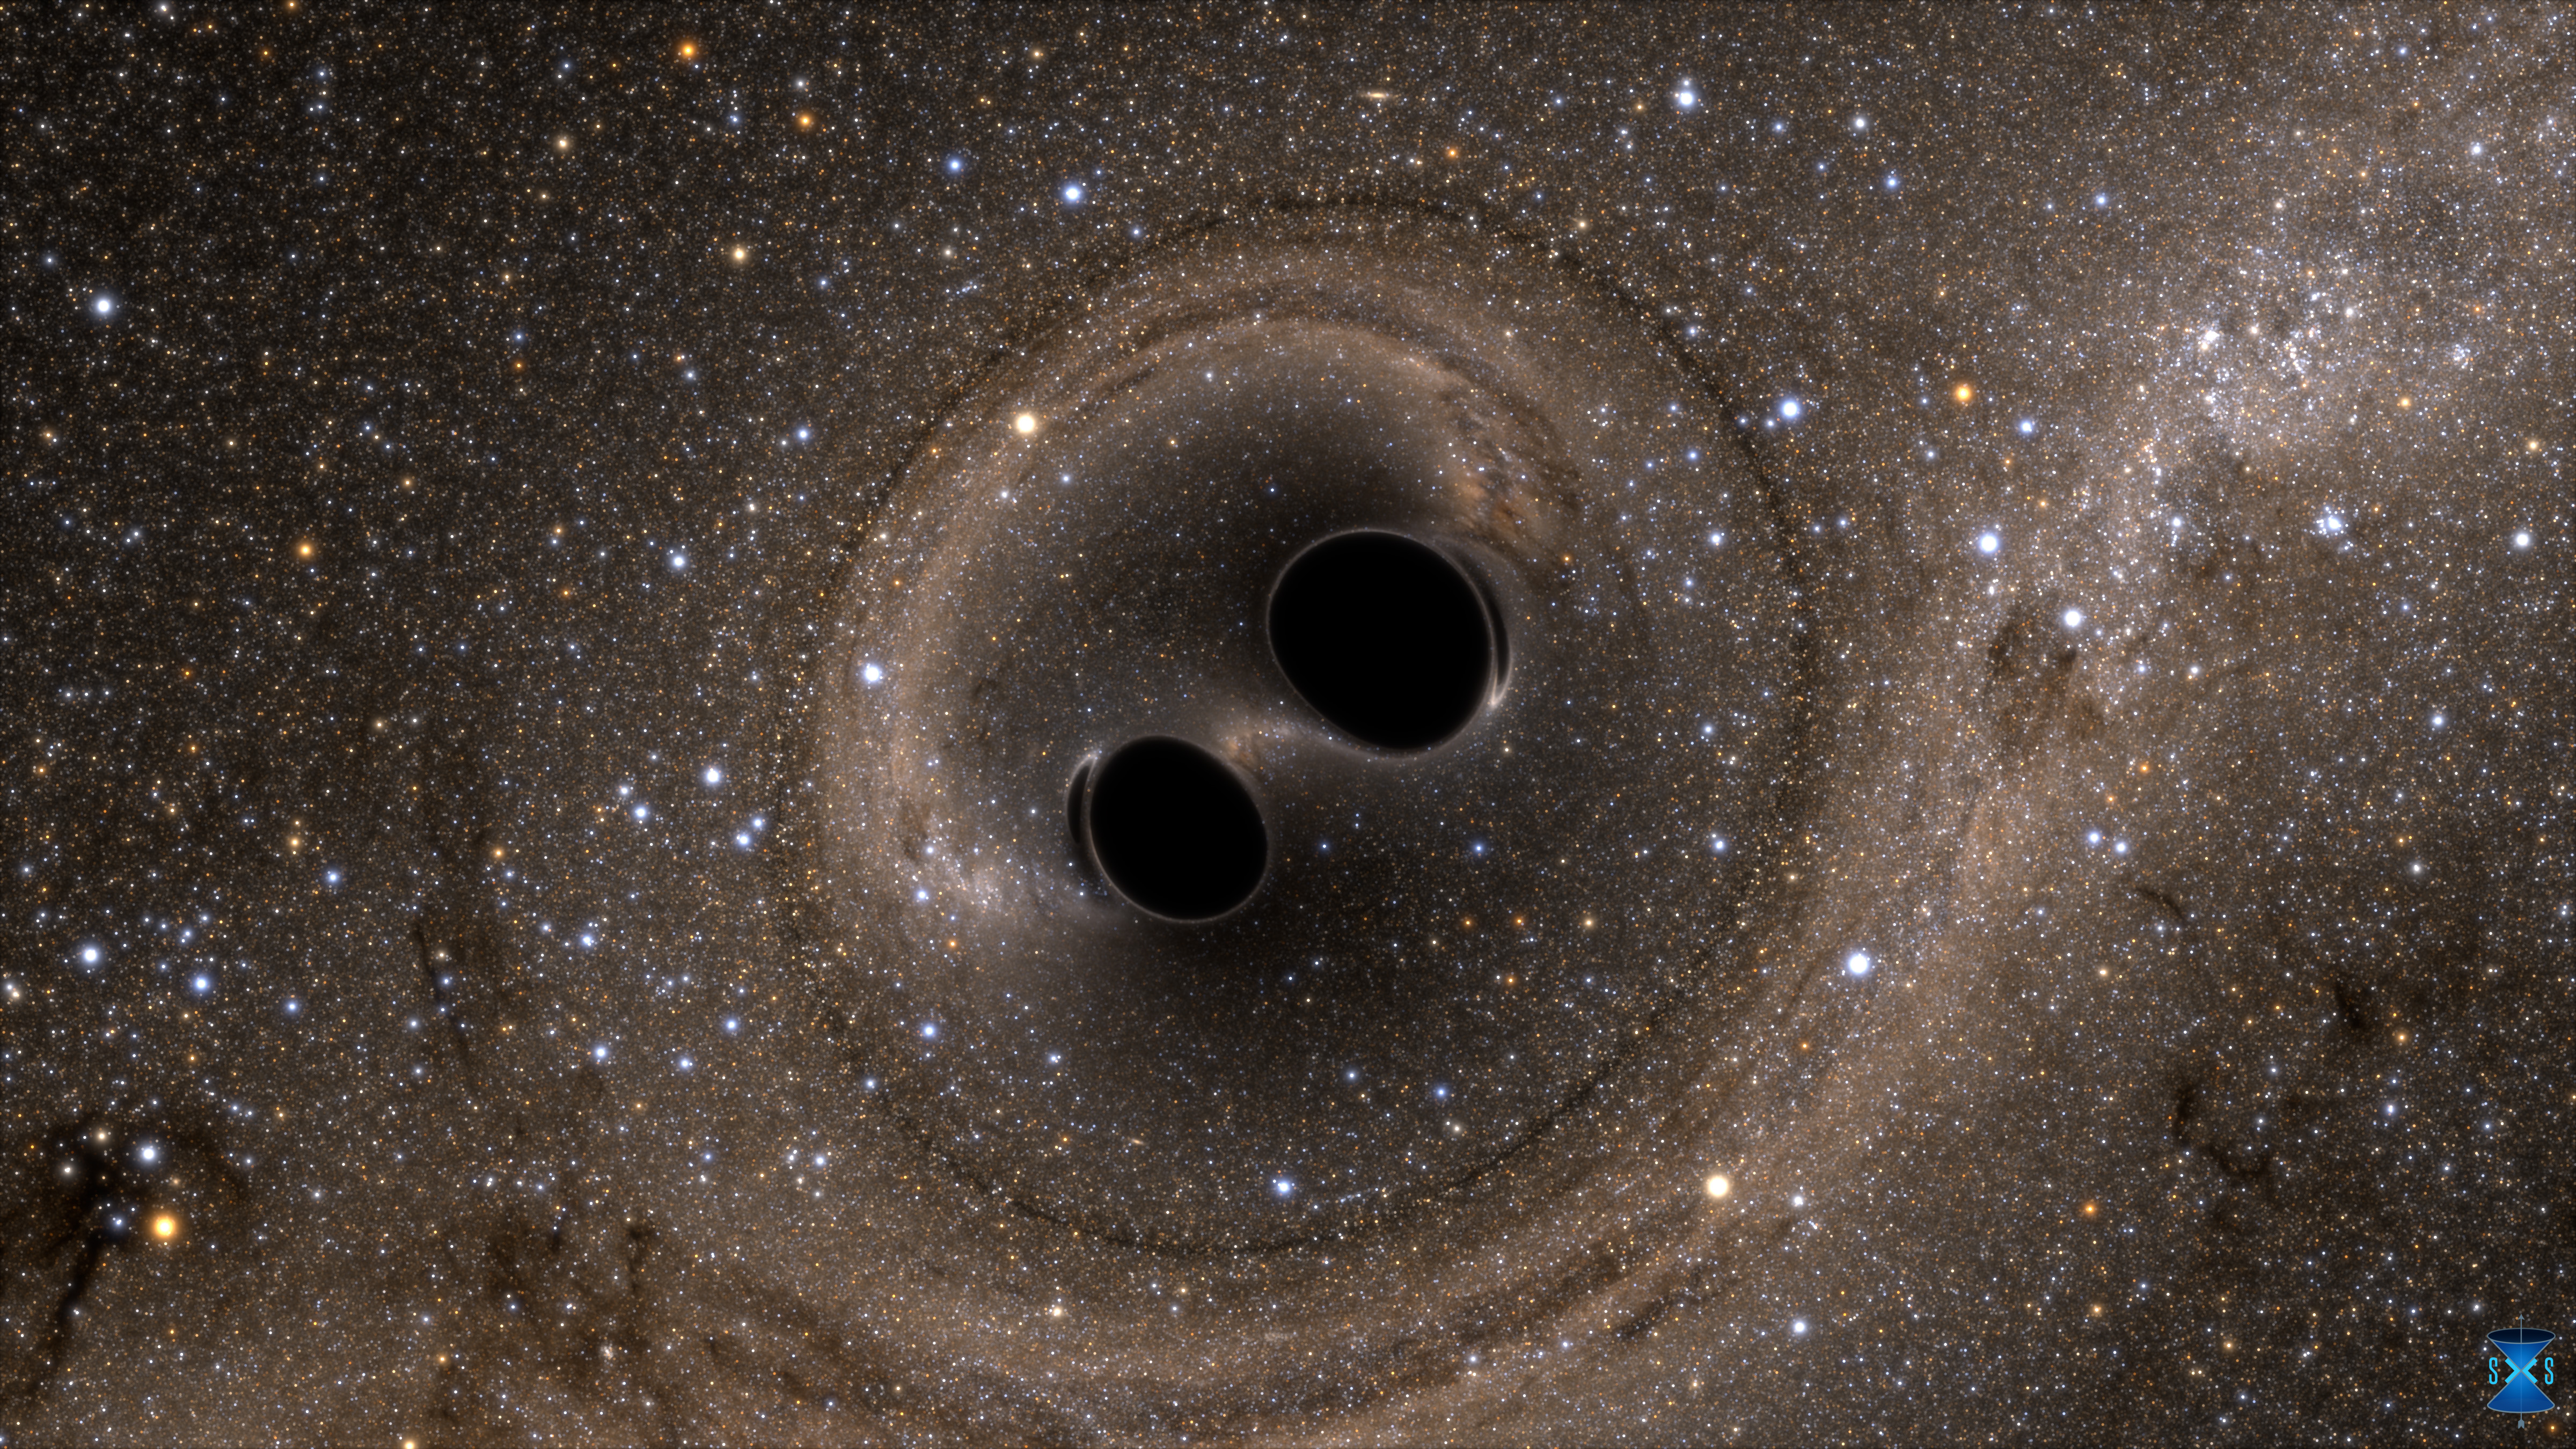 The simplest explanation of why we should care about gravitational waves